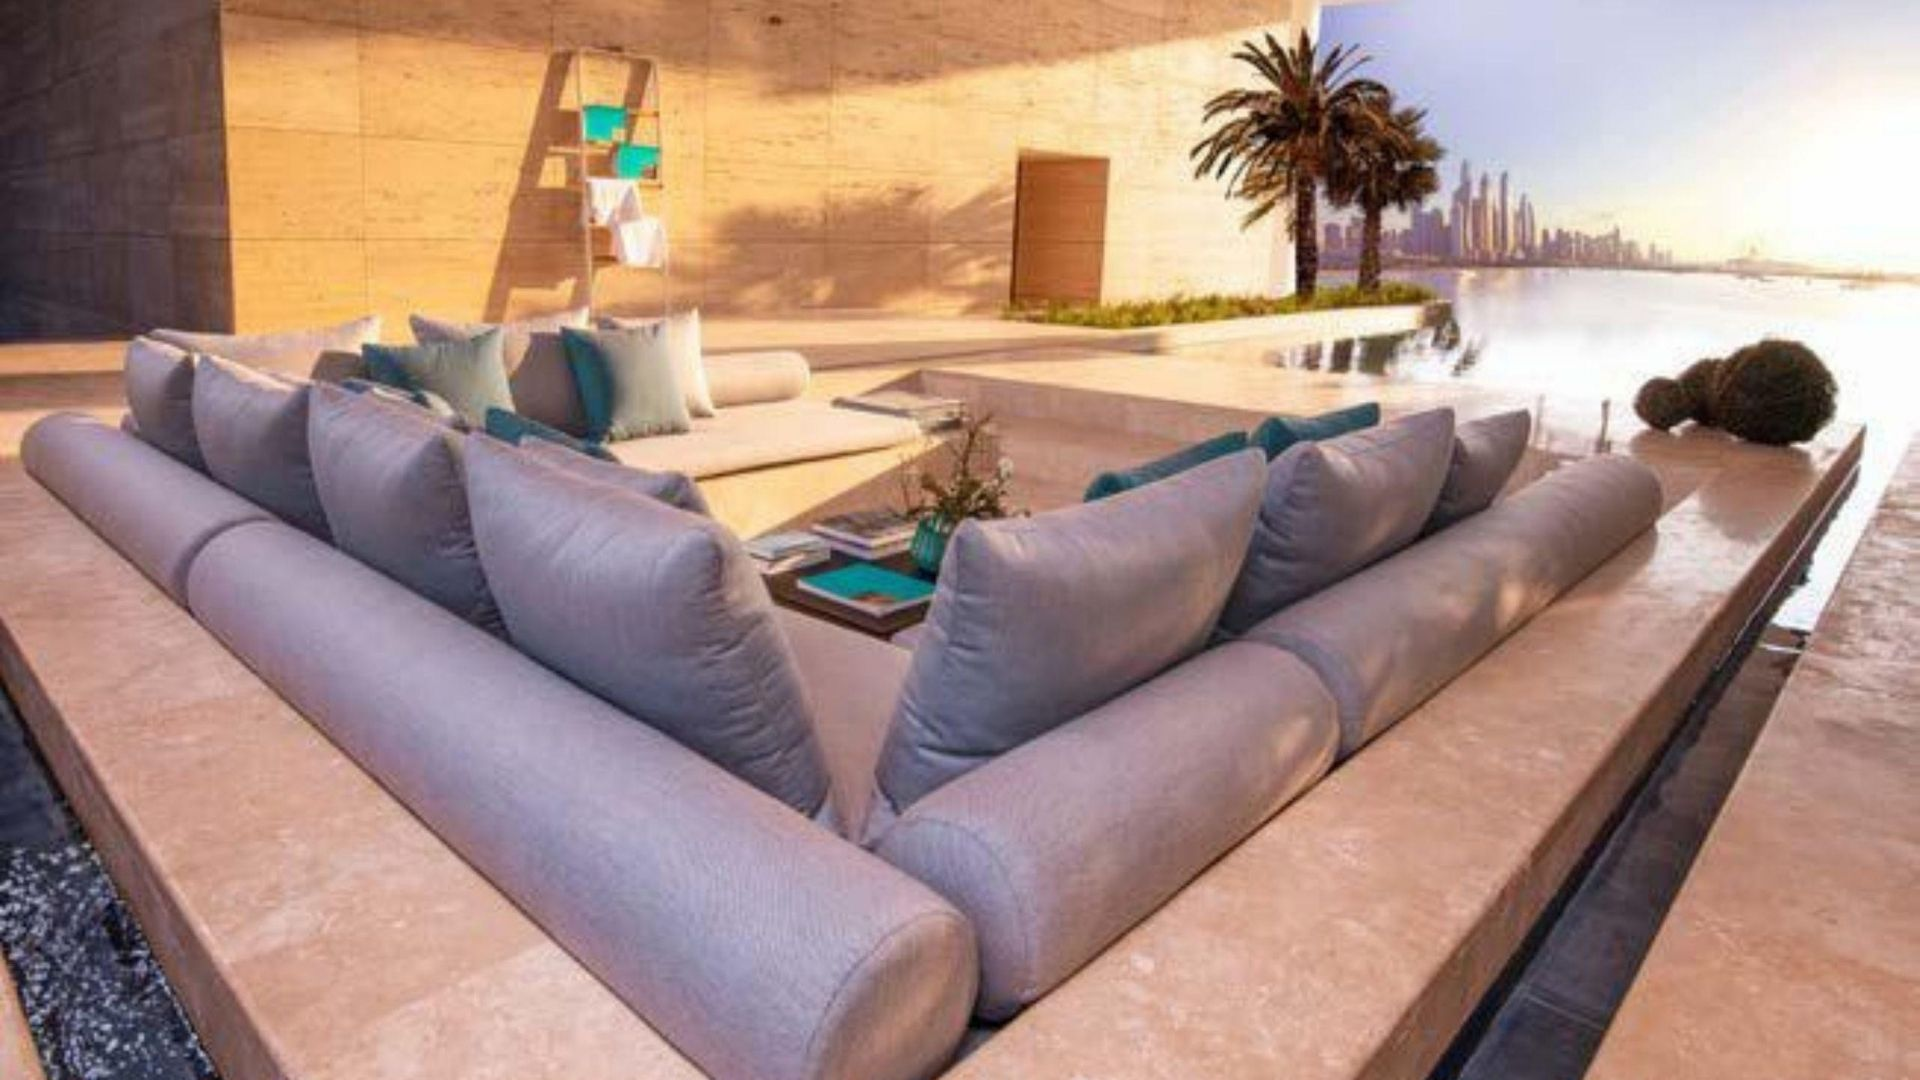 5 - Live like Royalty in These Amazing Luxury Homes in Dubai